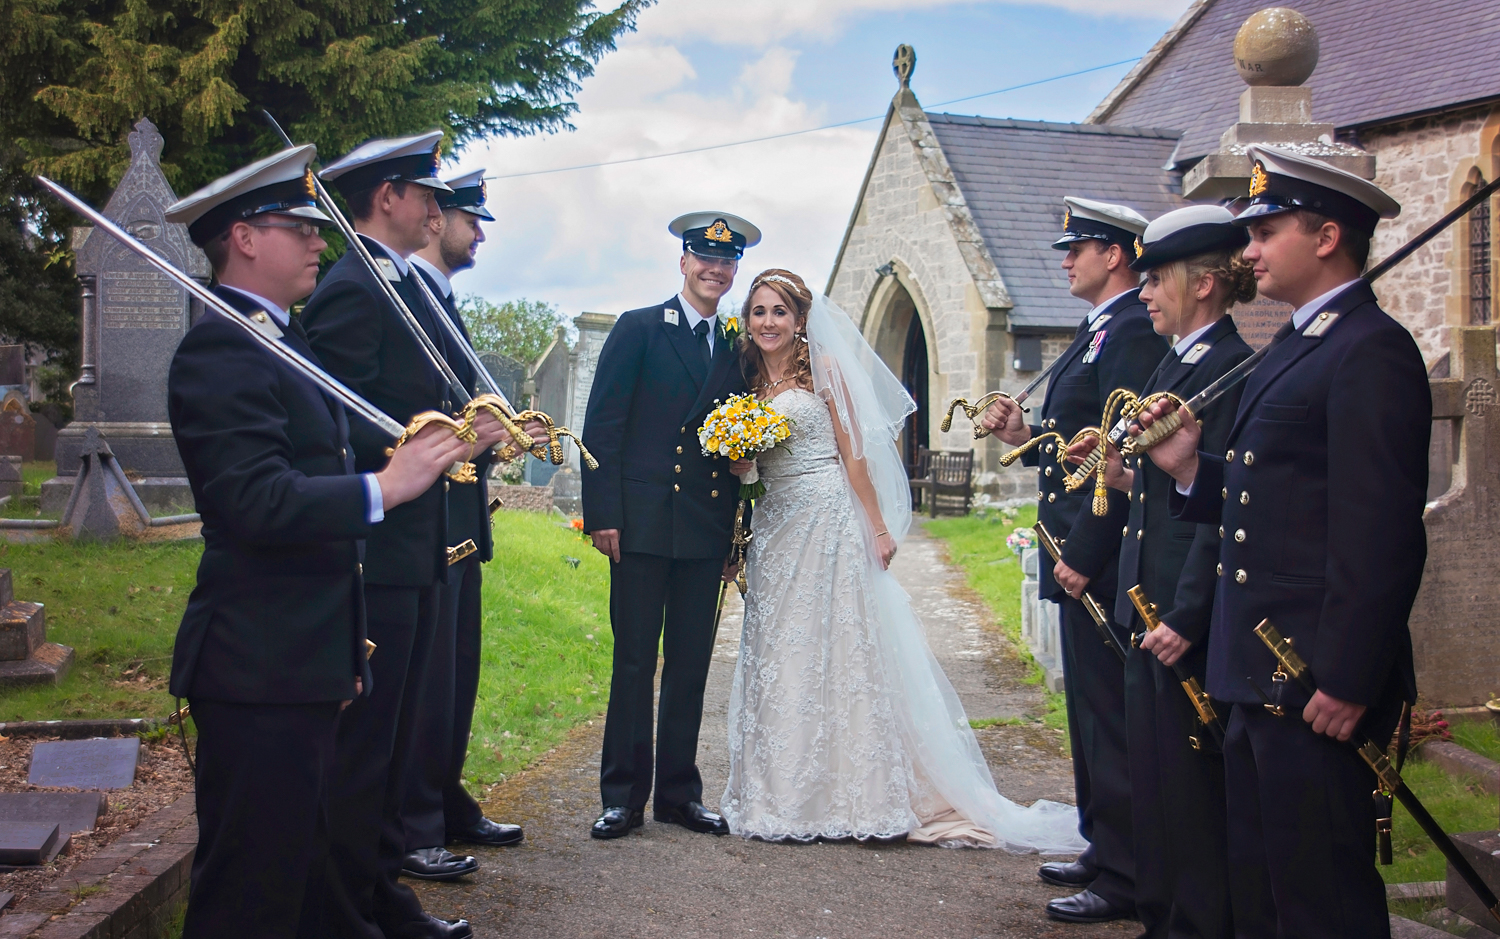 Honour guard wedding | St Cynfran